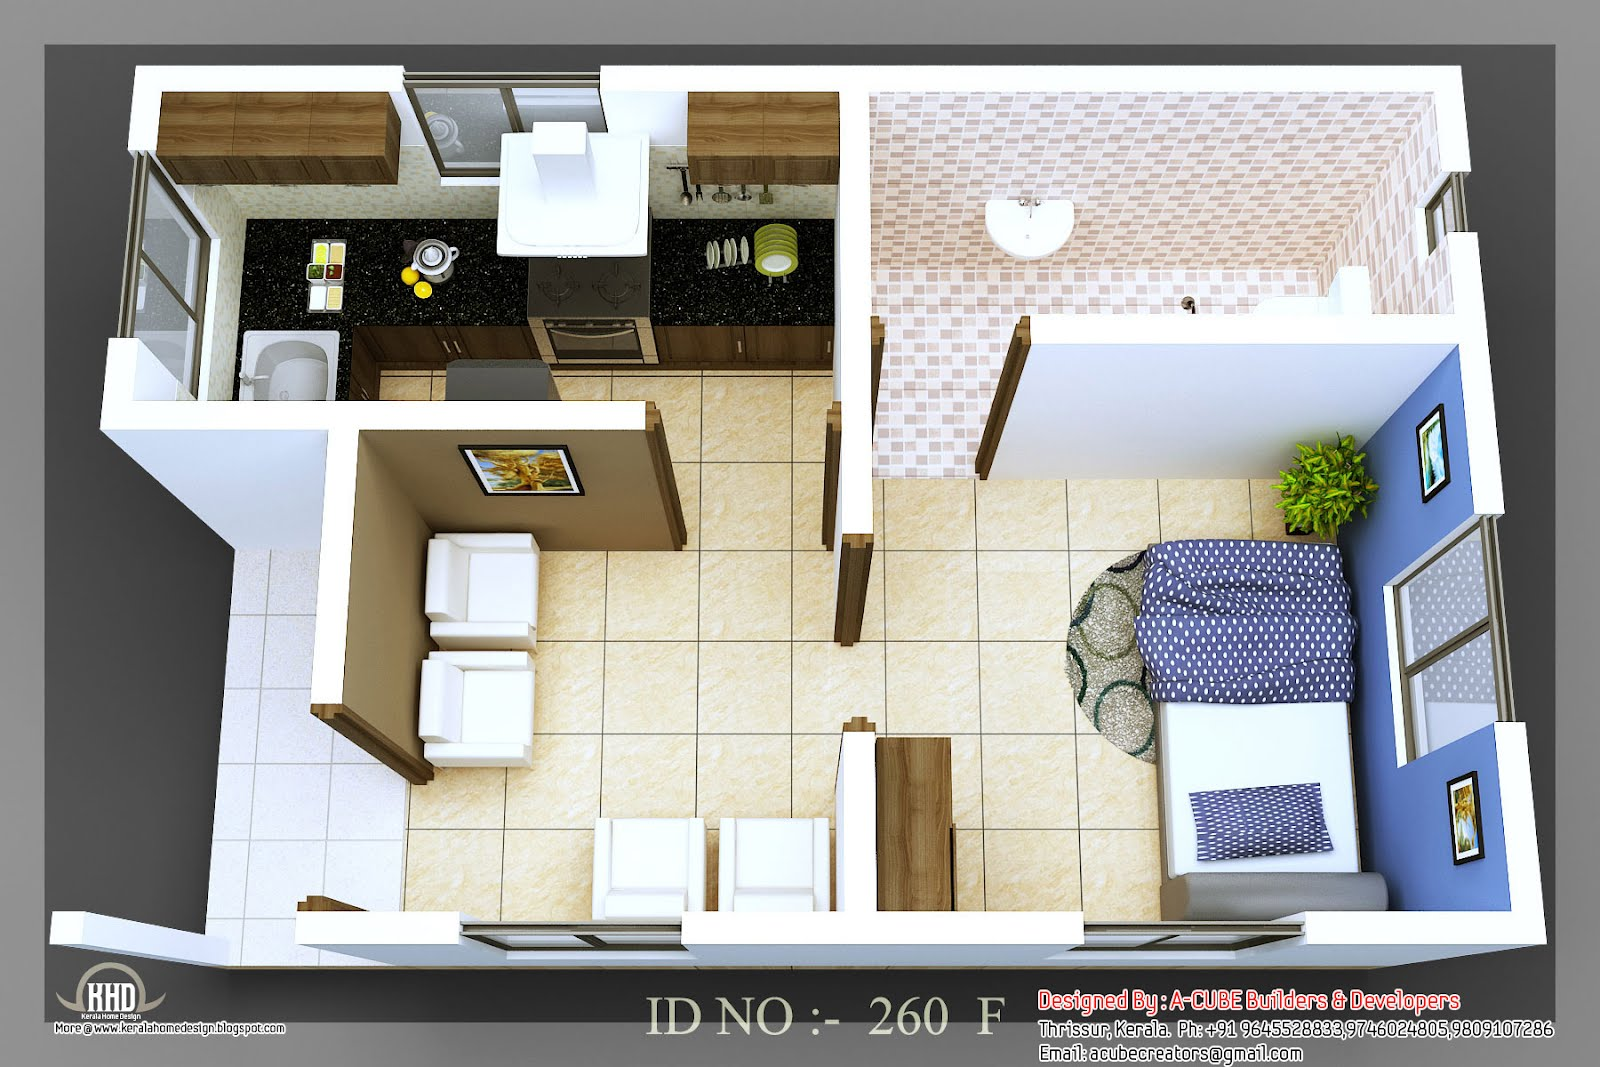 3d isometric views of small house plans home appliance for Home design ideas 3d